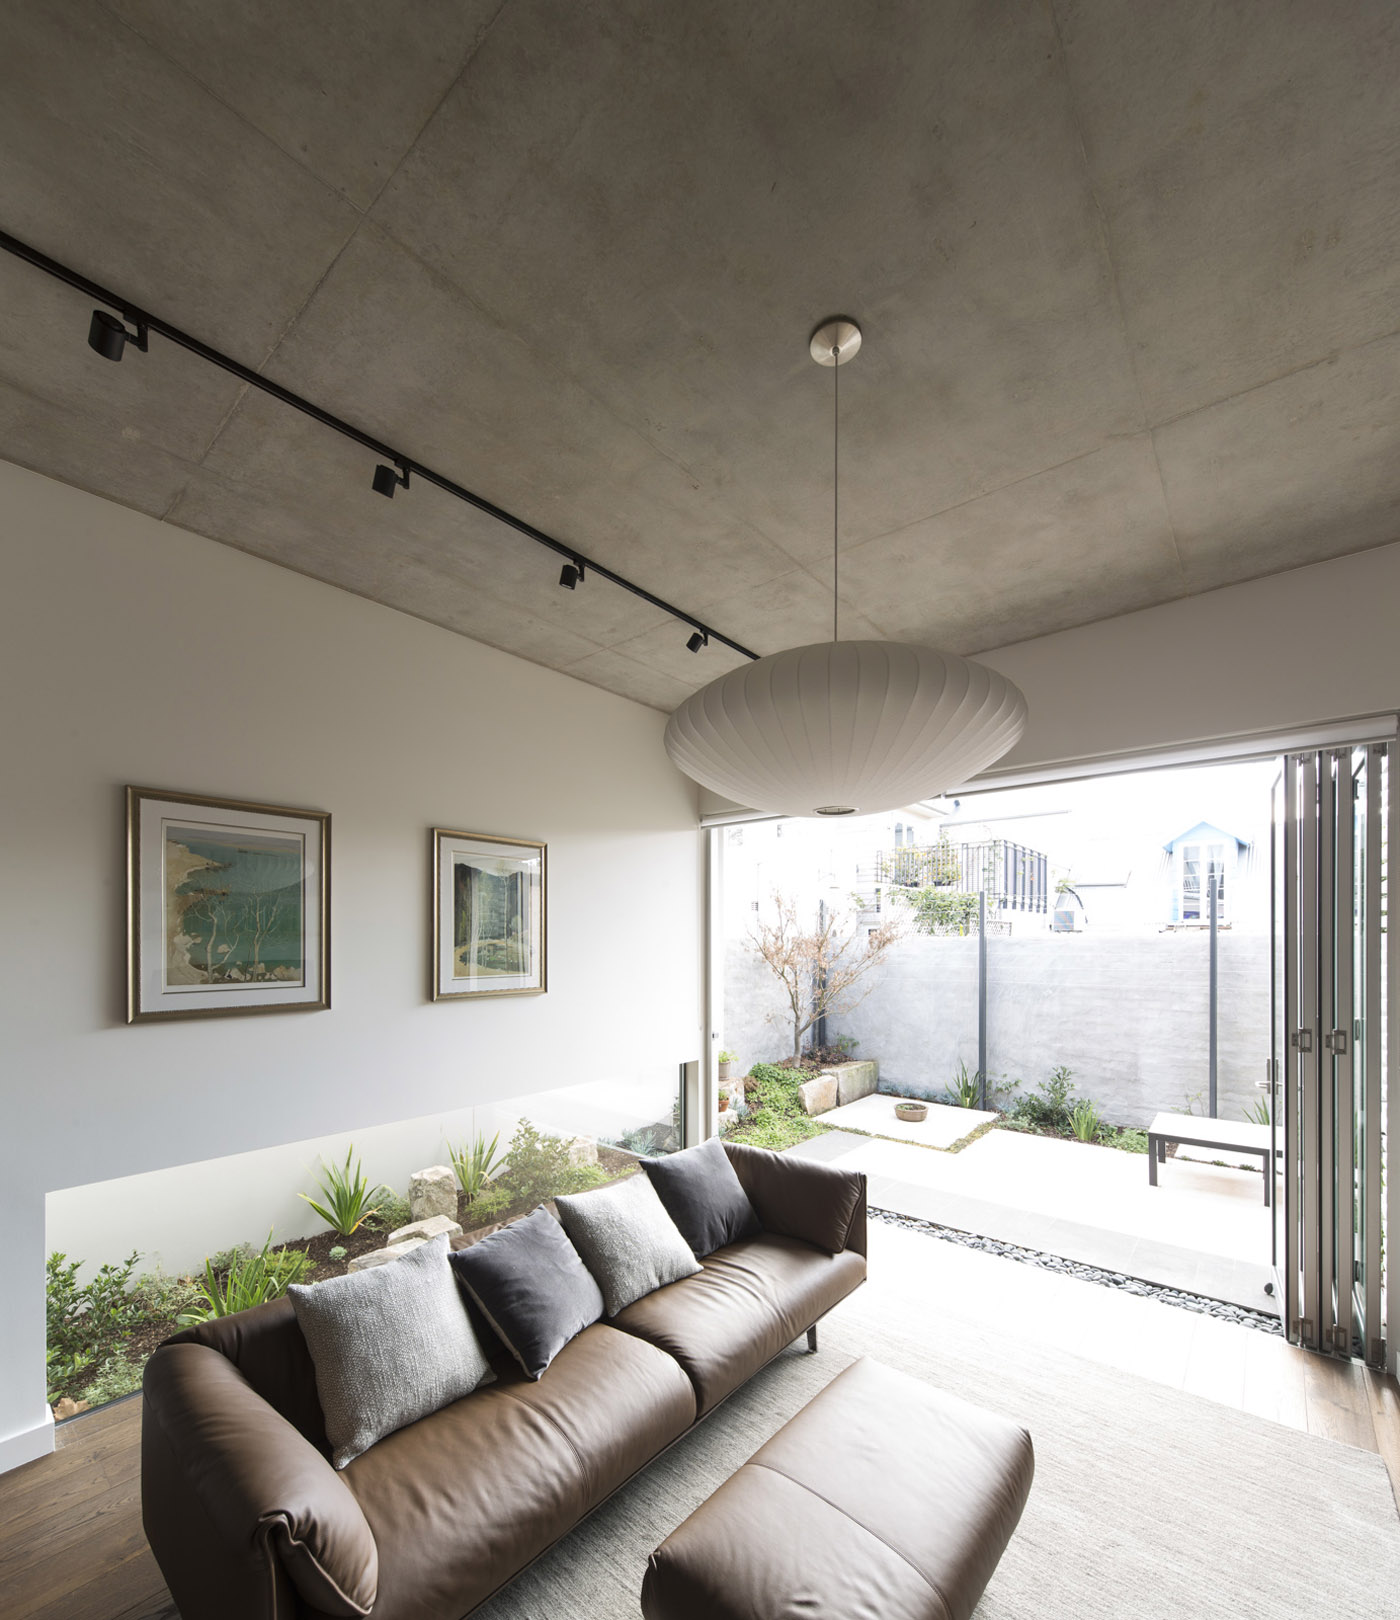 Gandha Kariappa Terrace by Sydney residential architects Sam Crawford Architects. View to light, open and tranquil living room